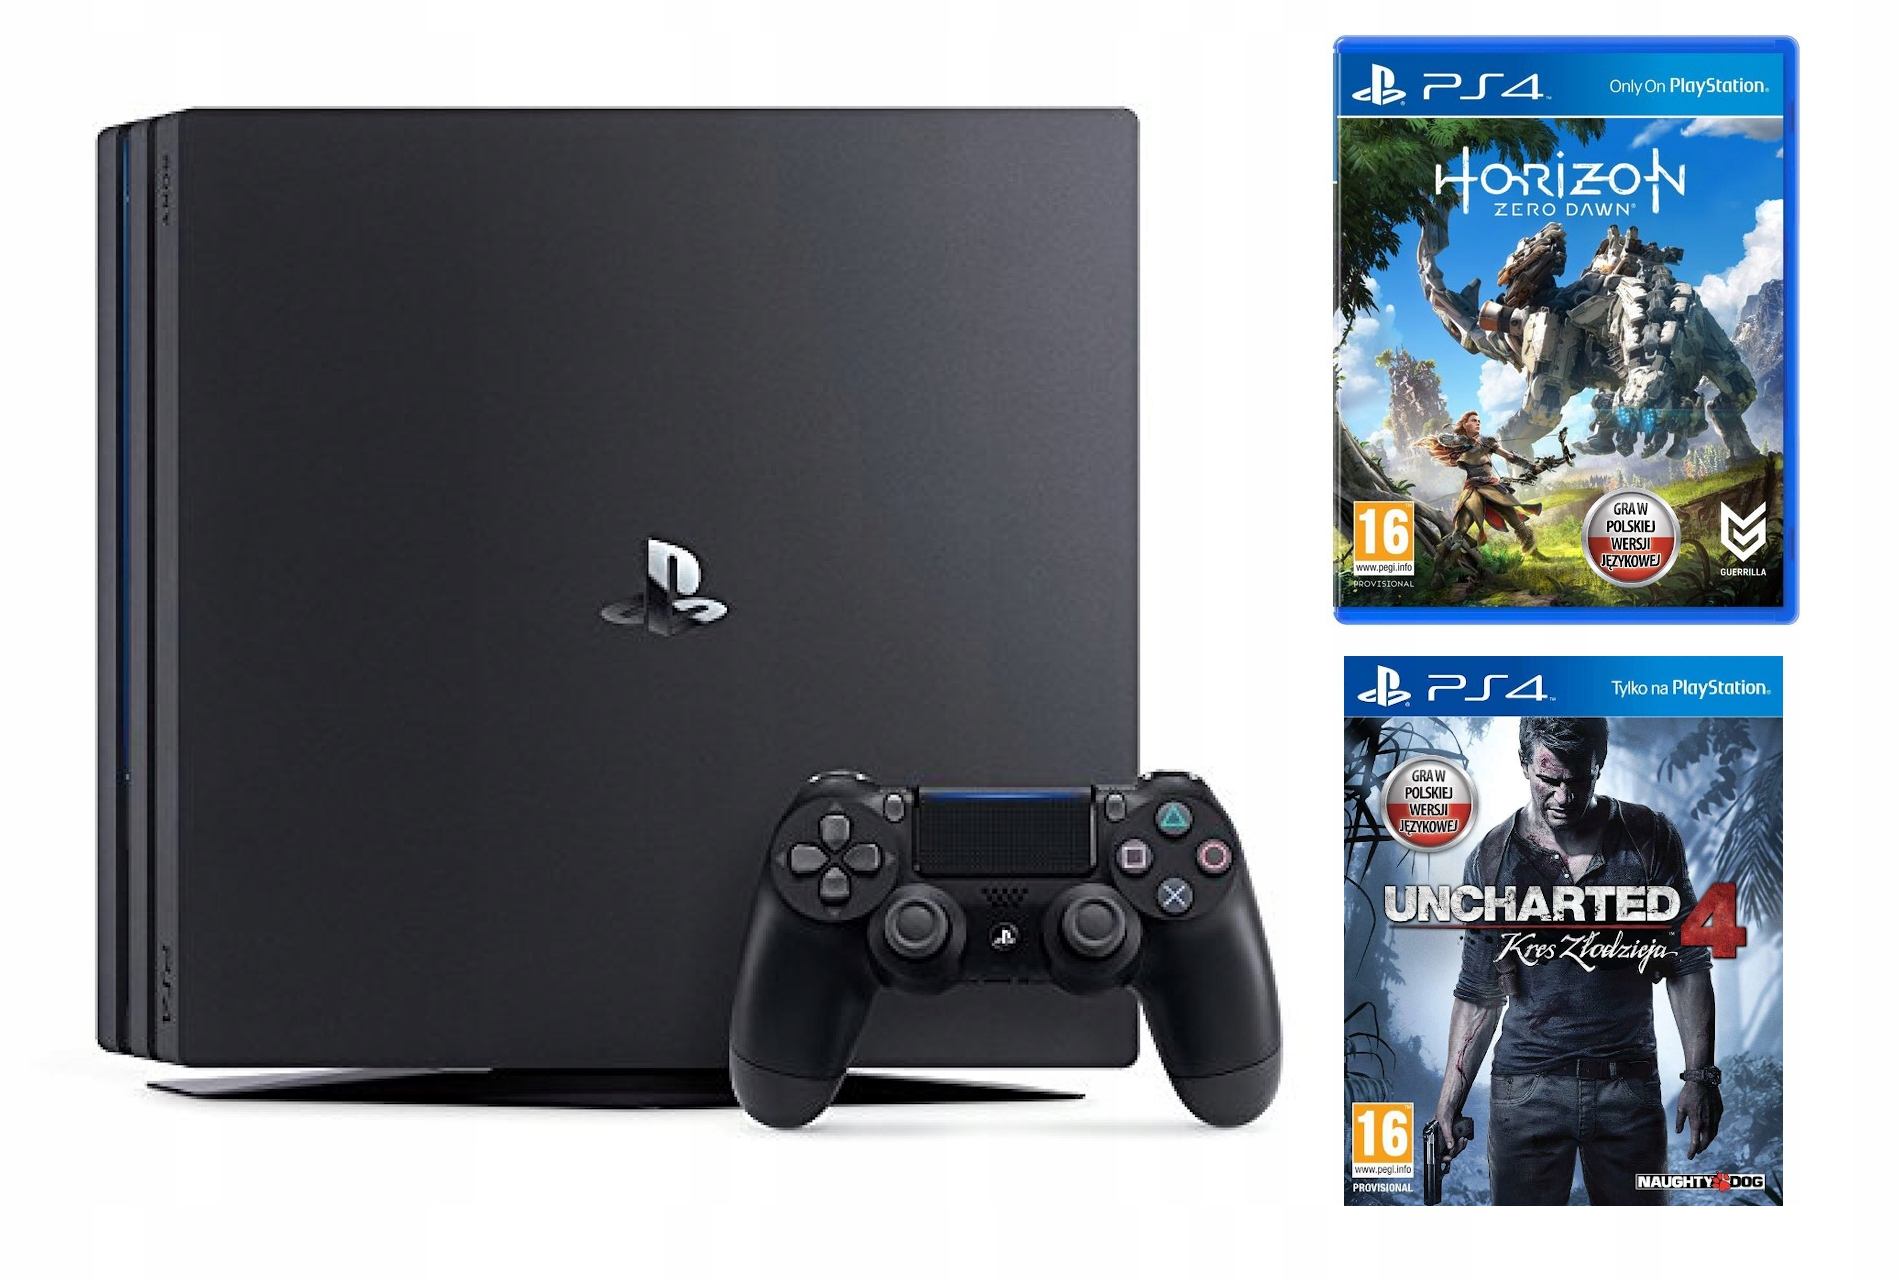 Item PS4 PRO 1TB 1000GB 4K HDR PLAYSTATION GAME HITS